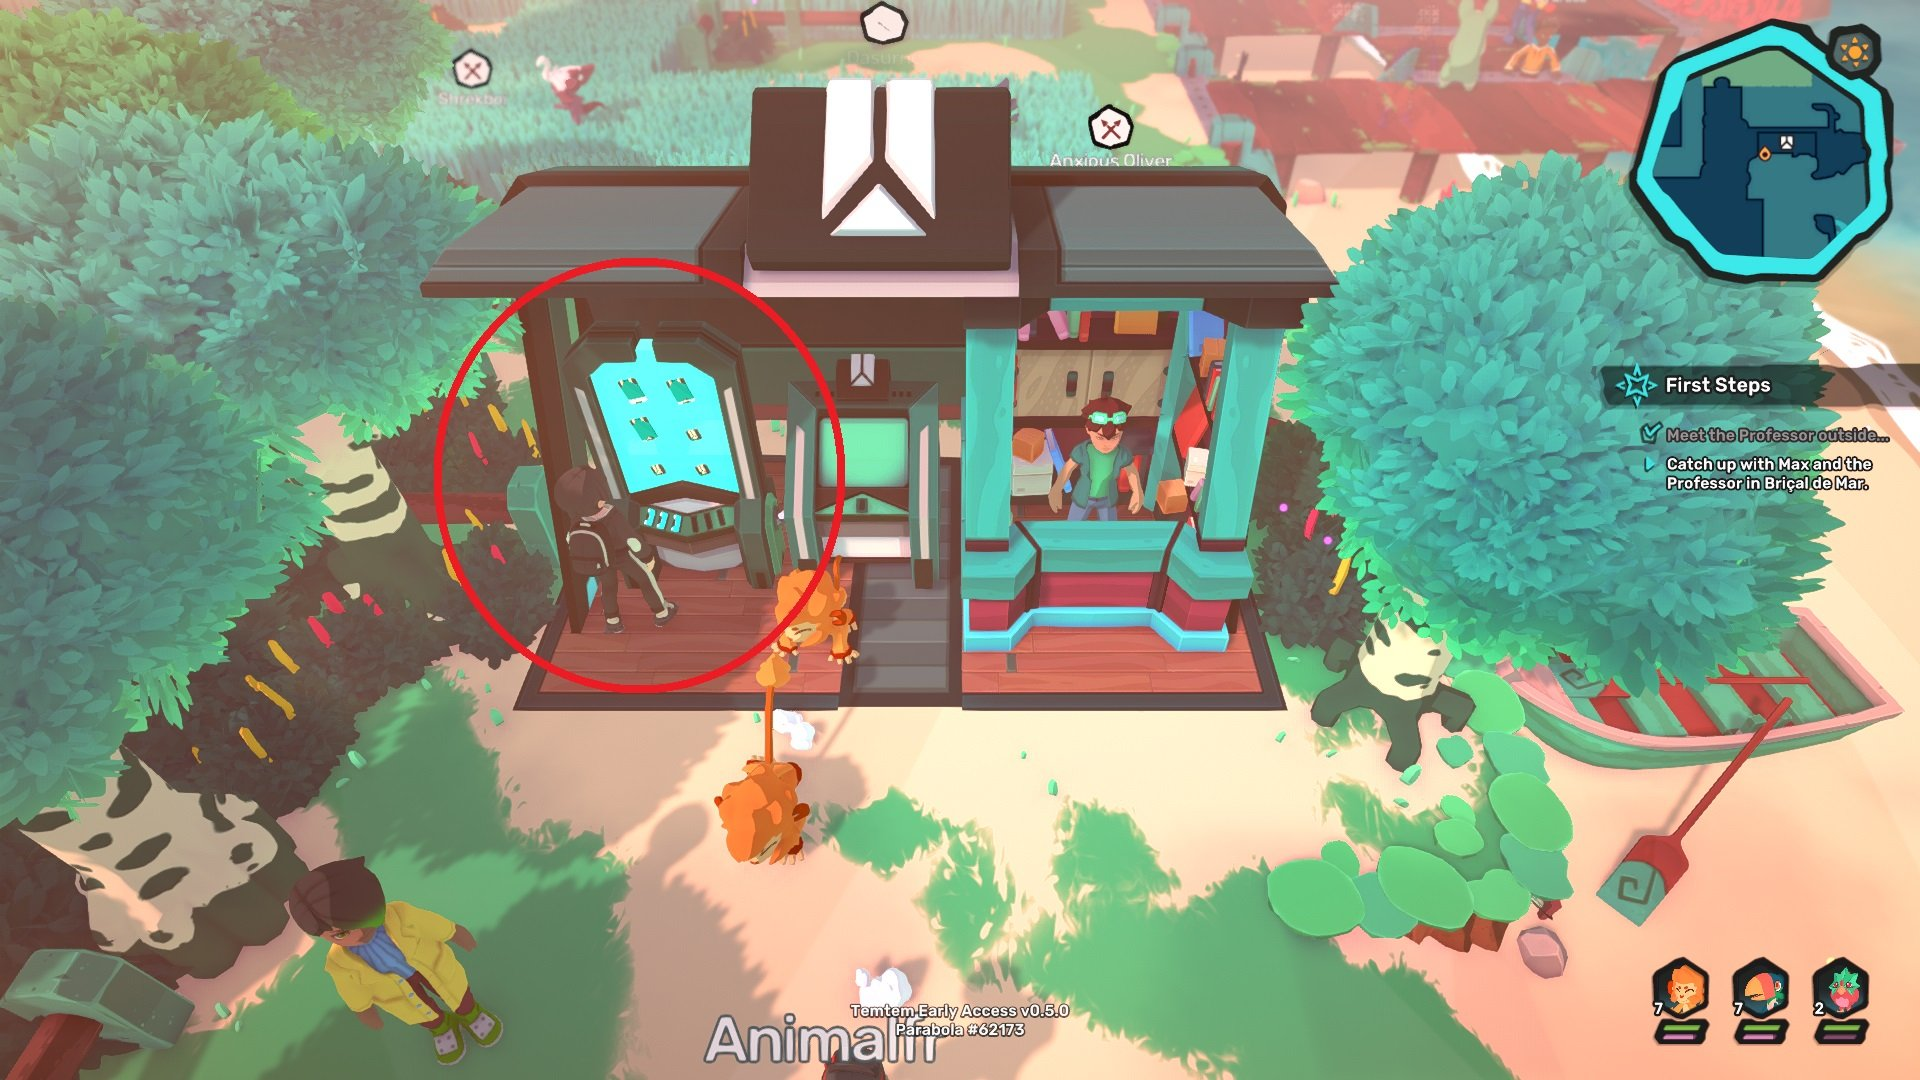 You can heal at mini-Temporiums if you're outside of a town area like Brical de Mar in Temtem.